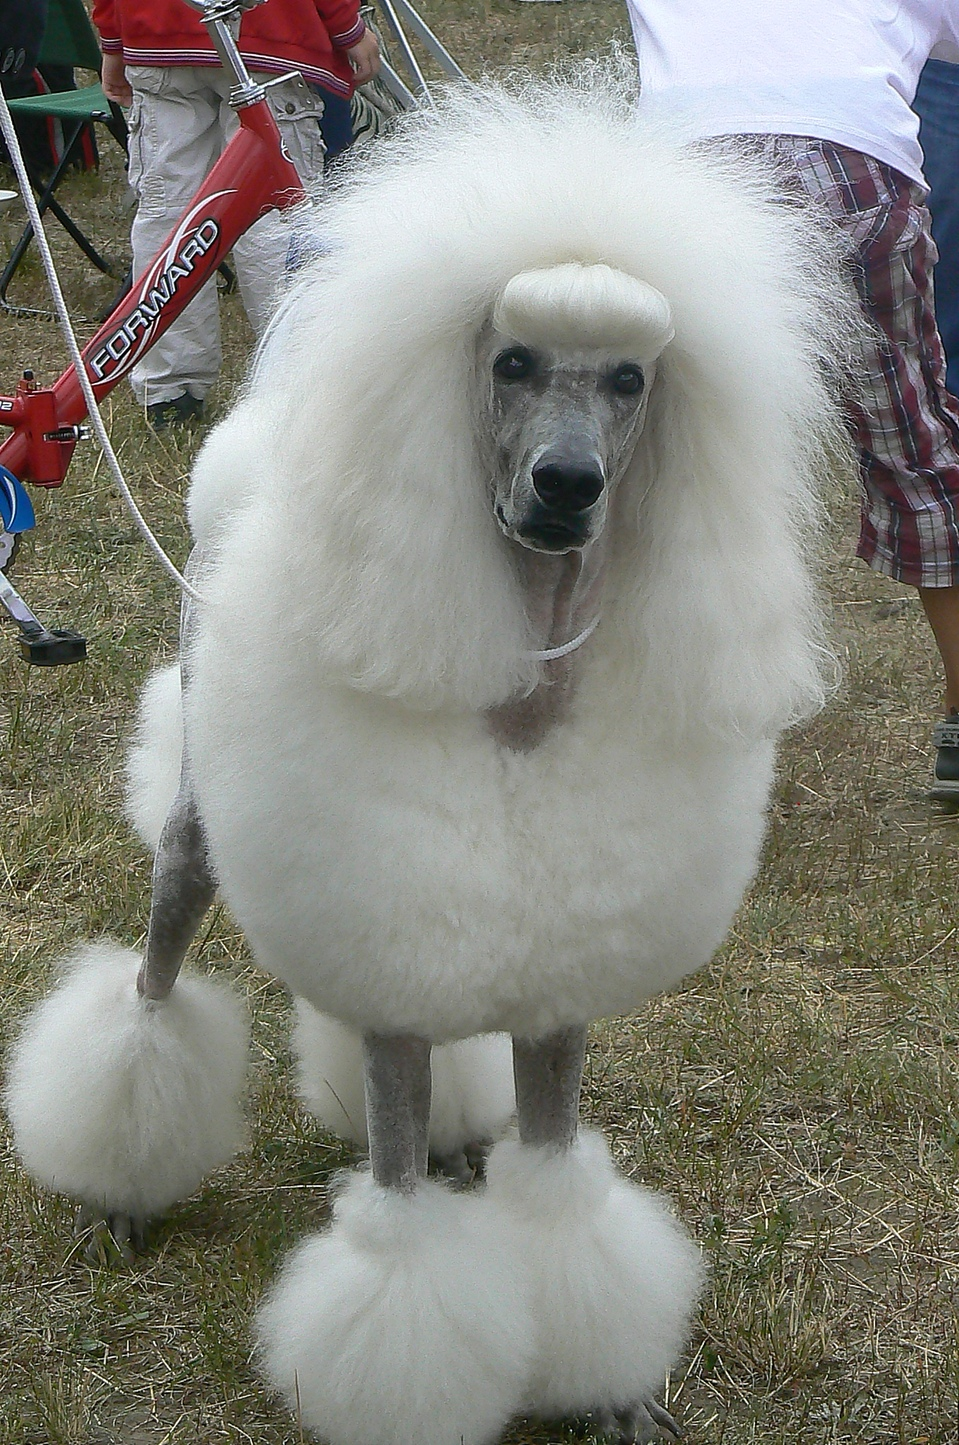 The white poodle